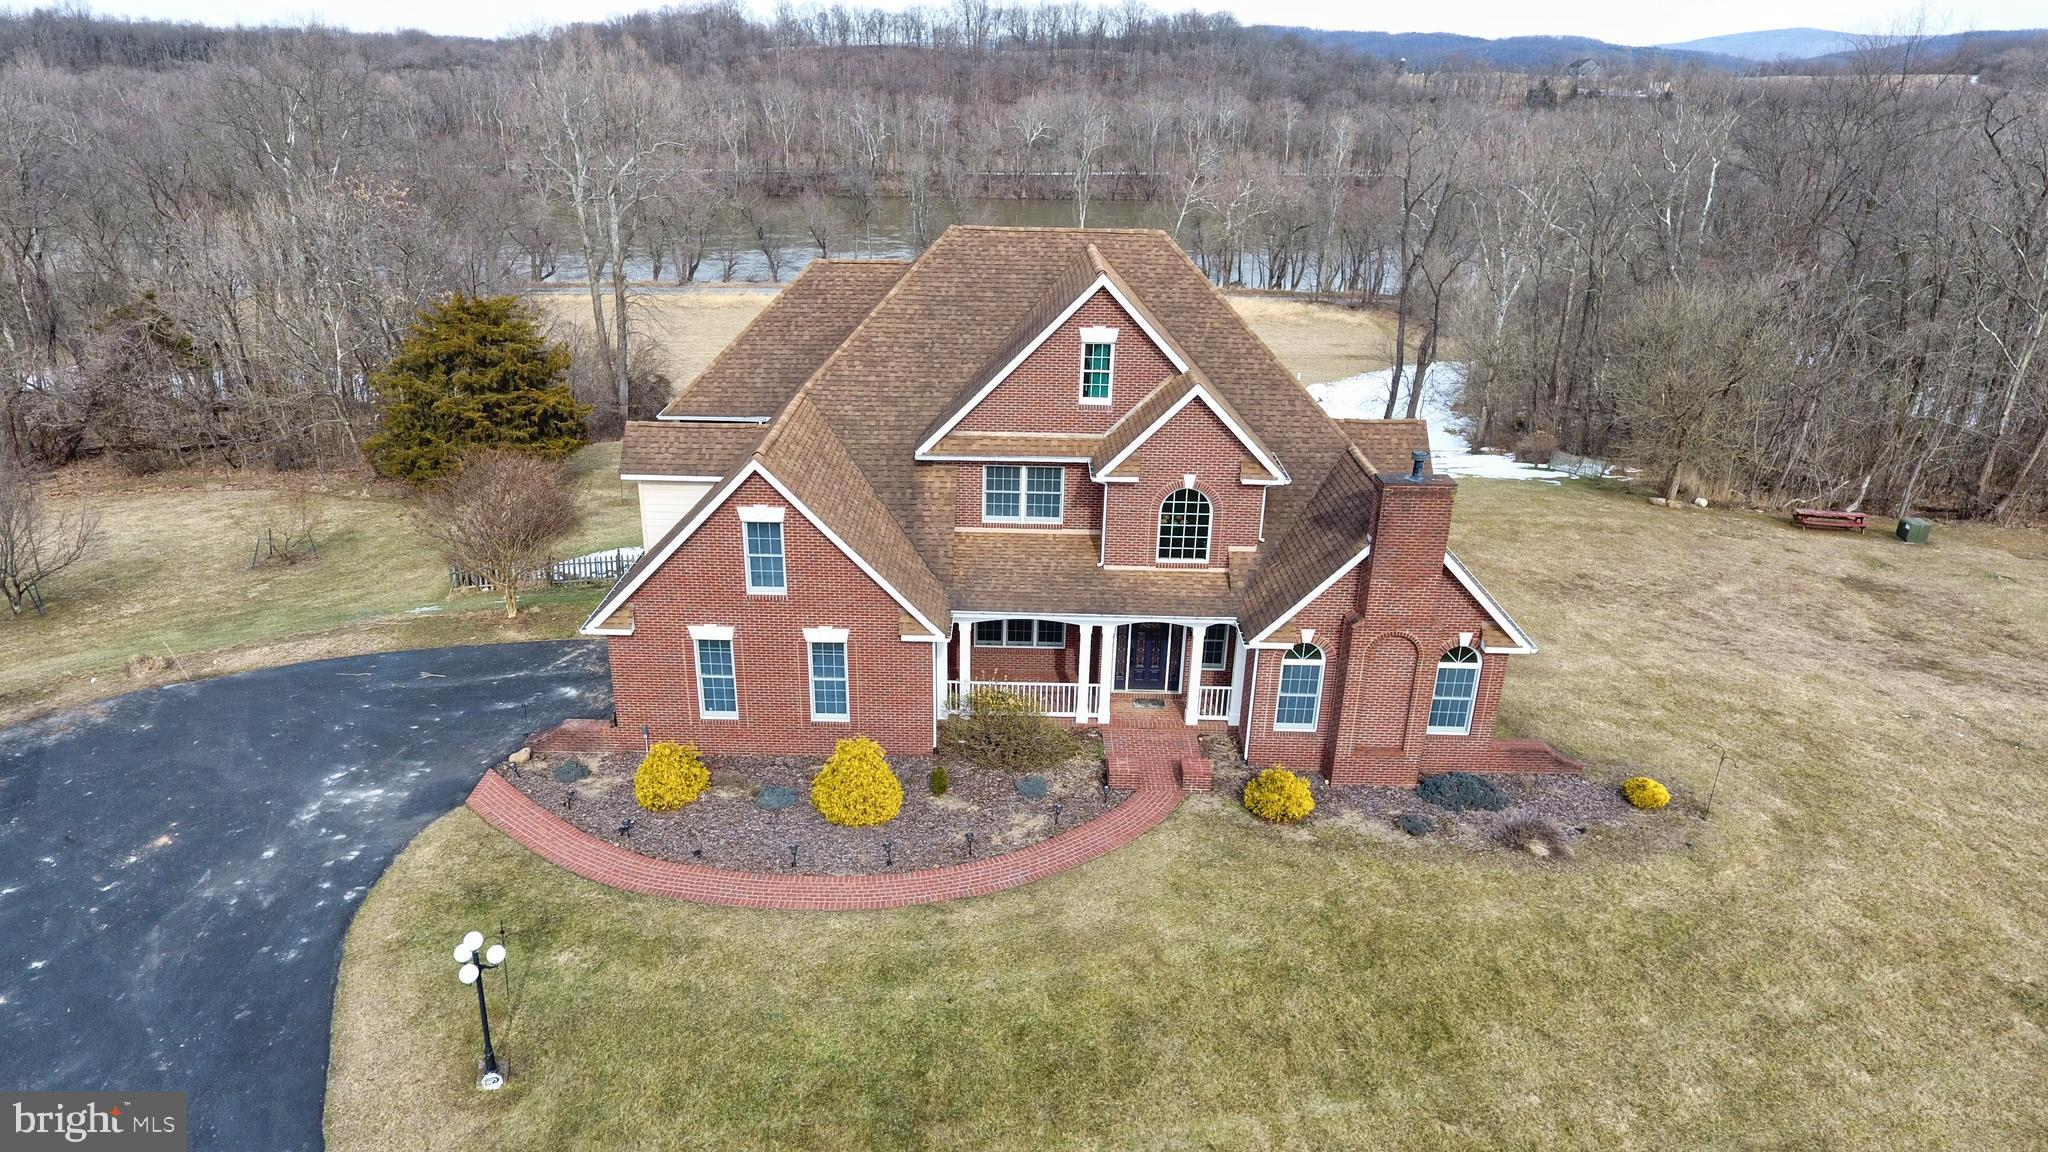 Welcome to your dream home! This immaculate 5 Bedroom, 4.5 Bath Brick Colonial rests on 24+ acres of